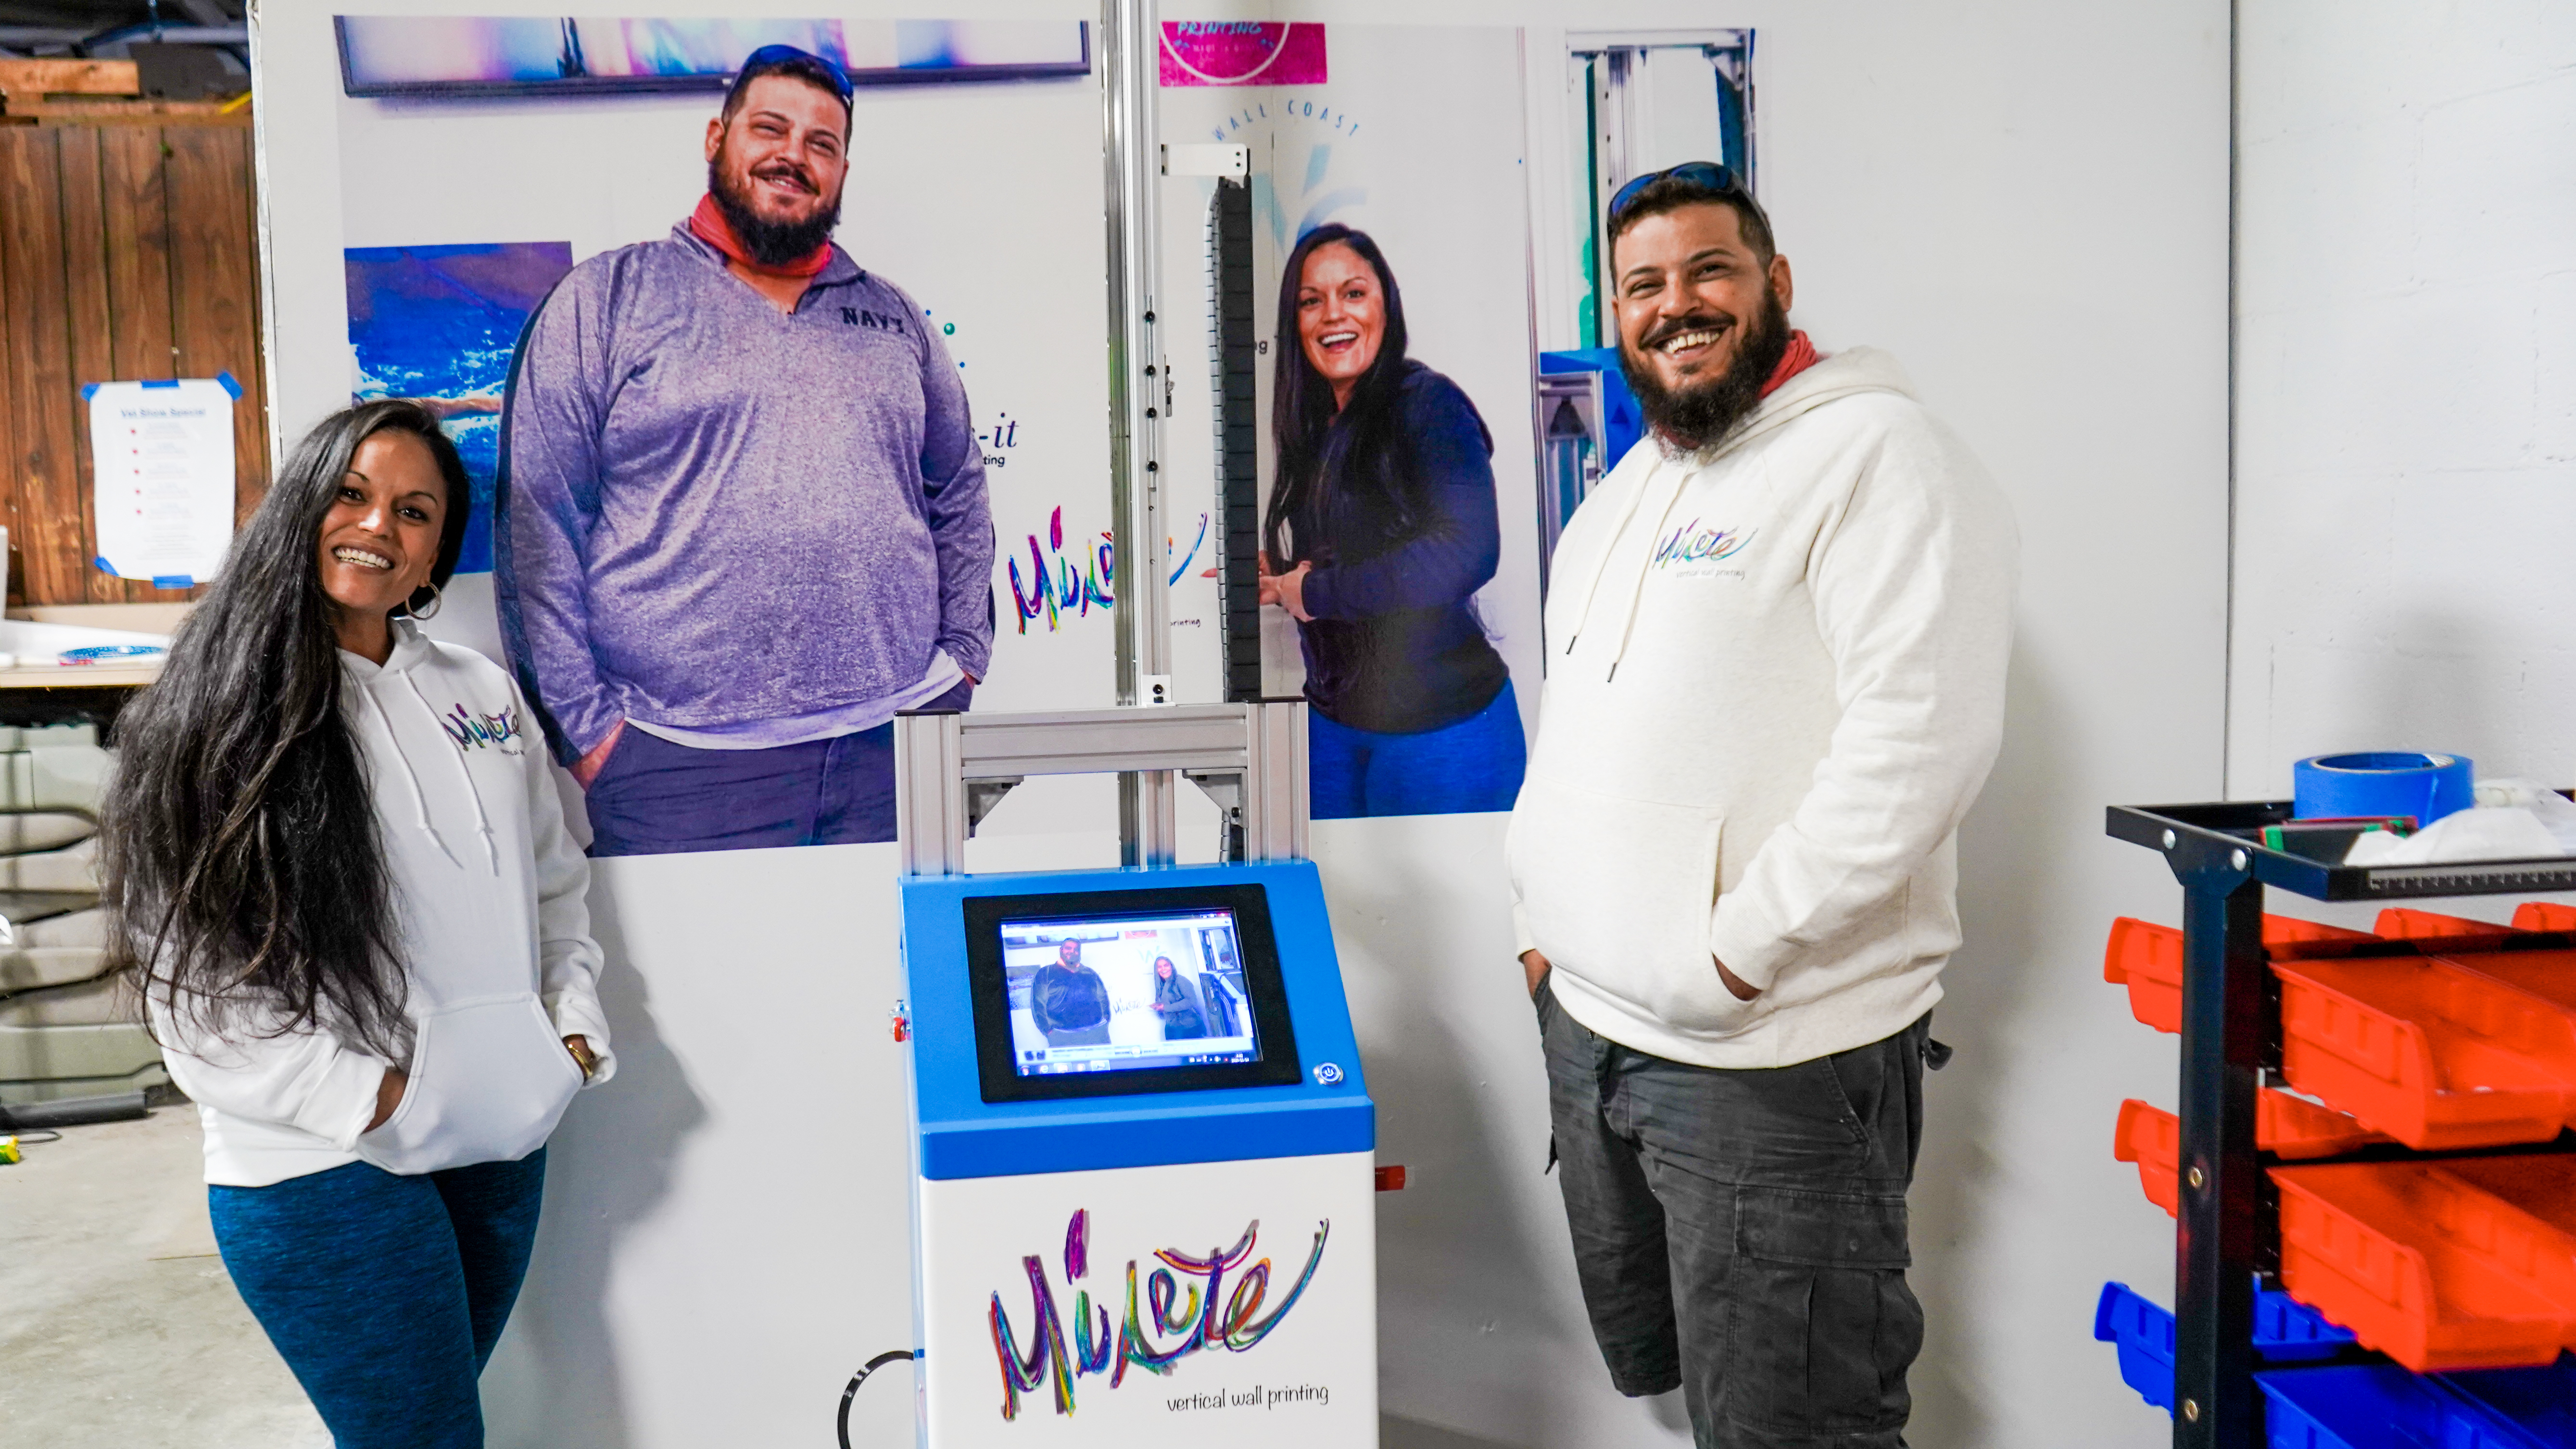 Ask a Business Owner: Why Choose The Wall Printer?